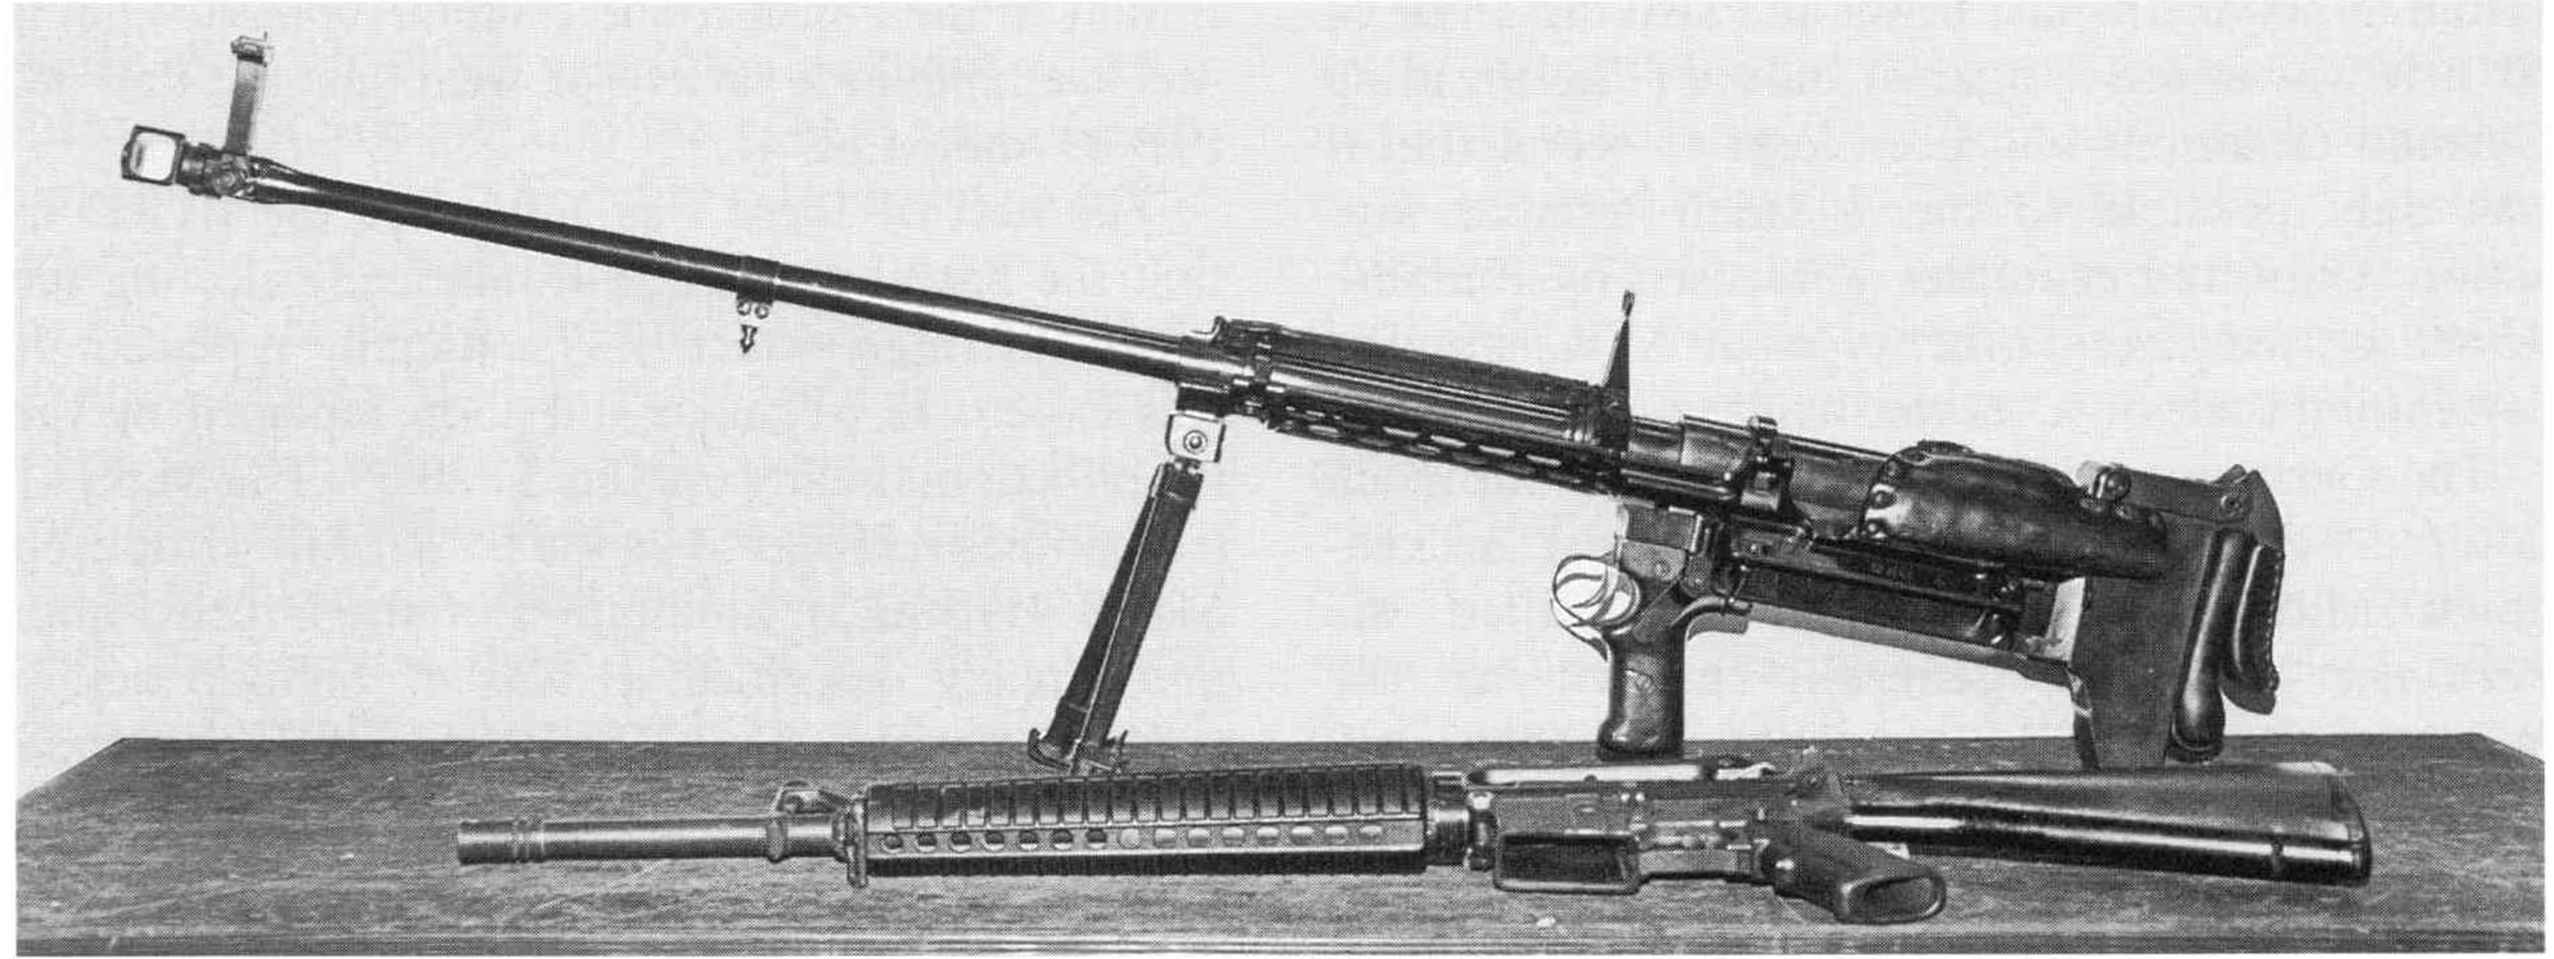 Helenius 20mm Rifle